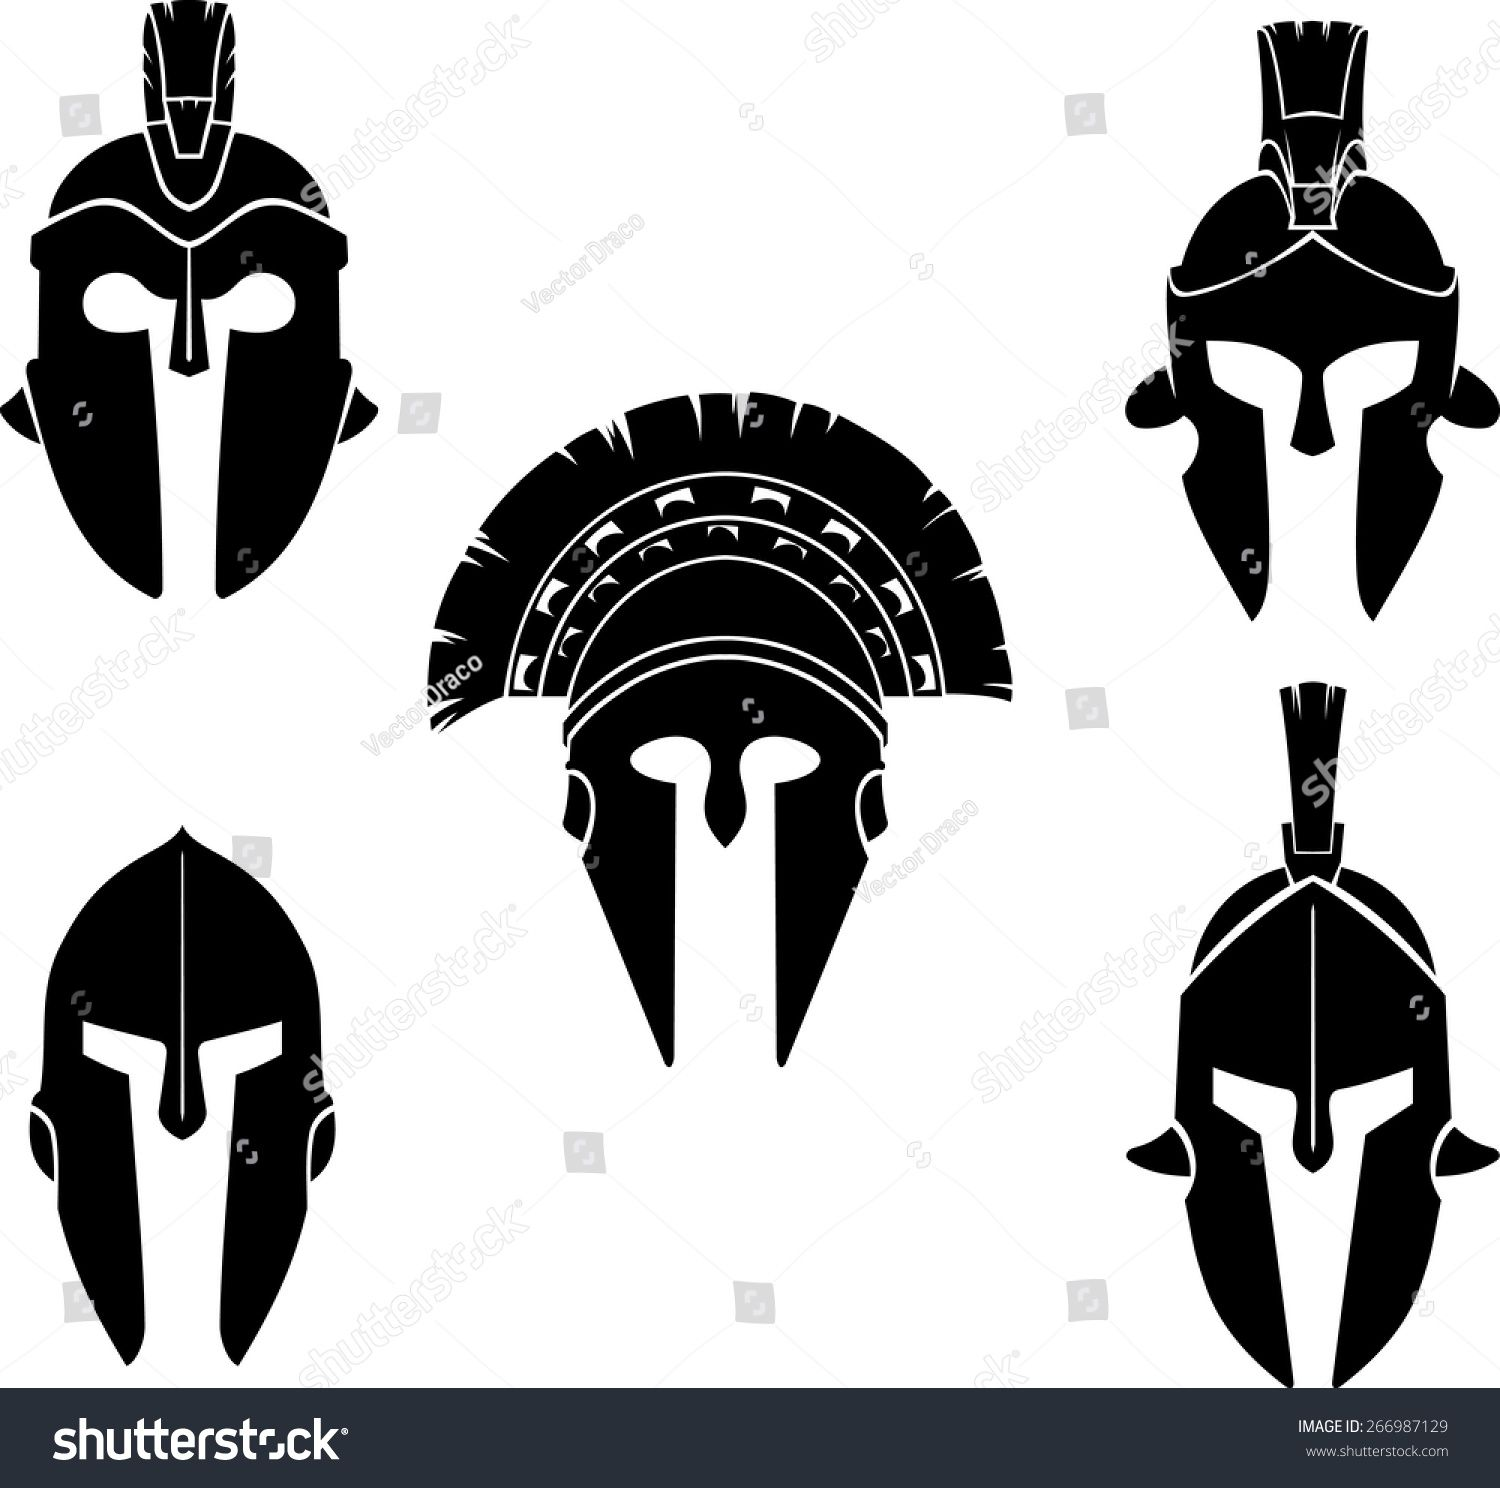 warriors logo clipart gladiator helmet